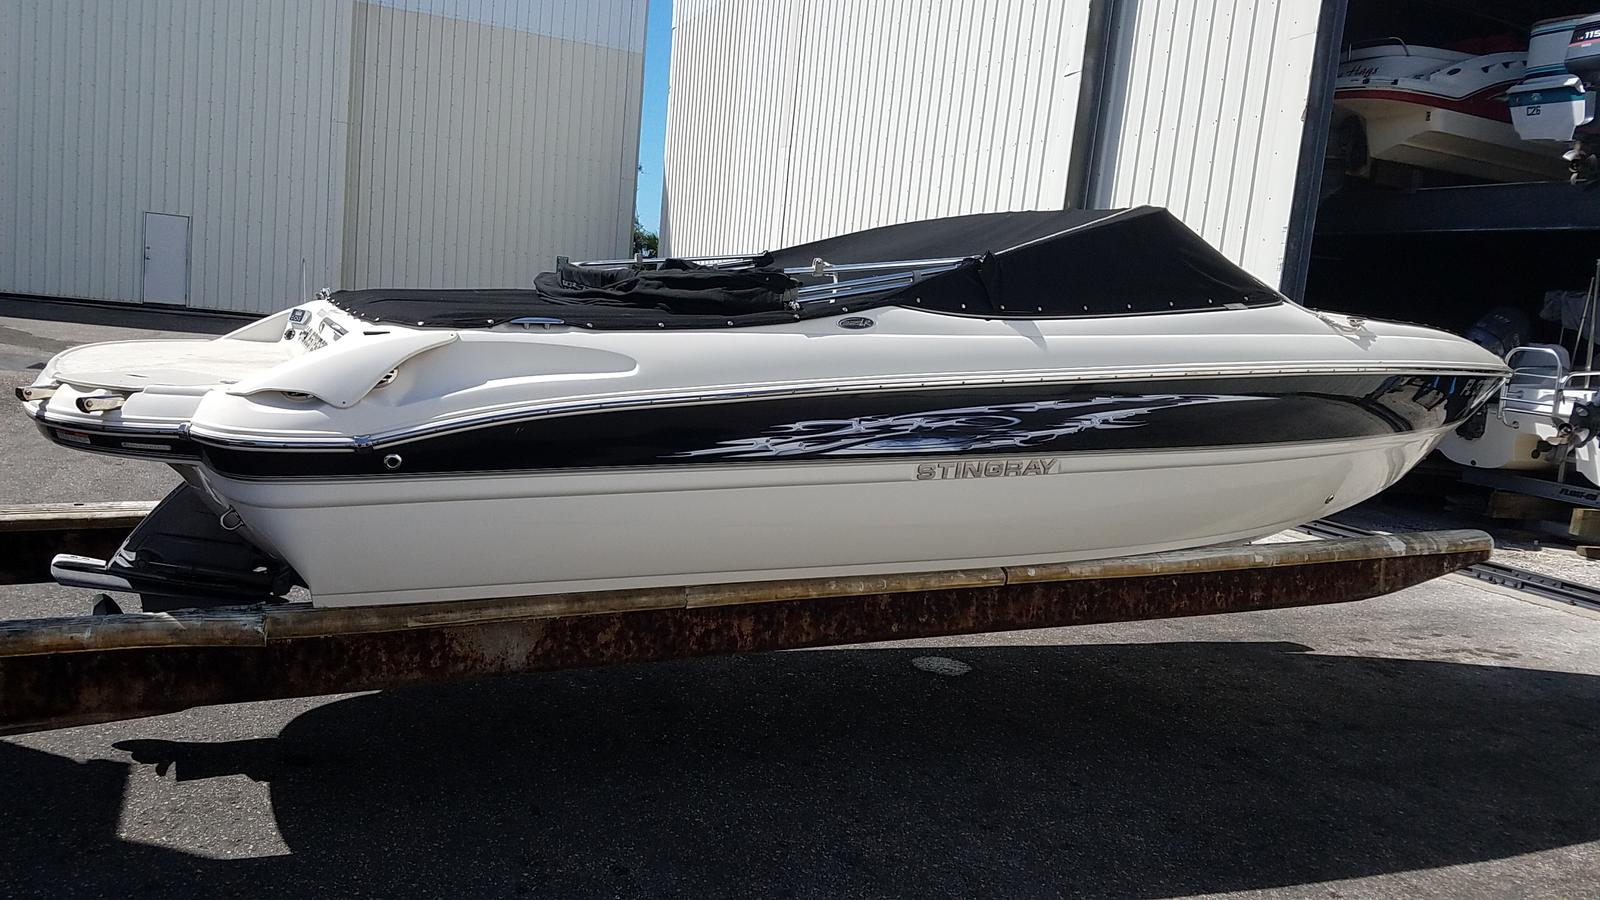 USED 2013 Stingray Boats 225LR - Sara Bay Marina